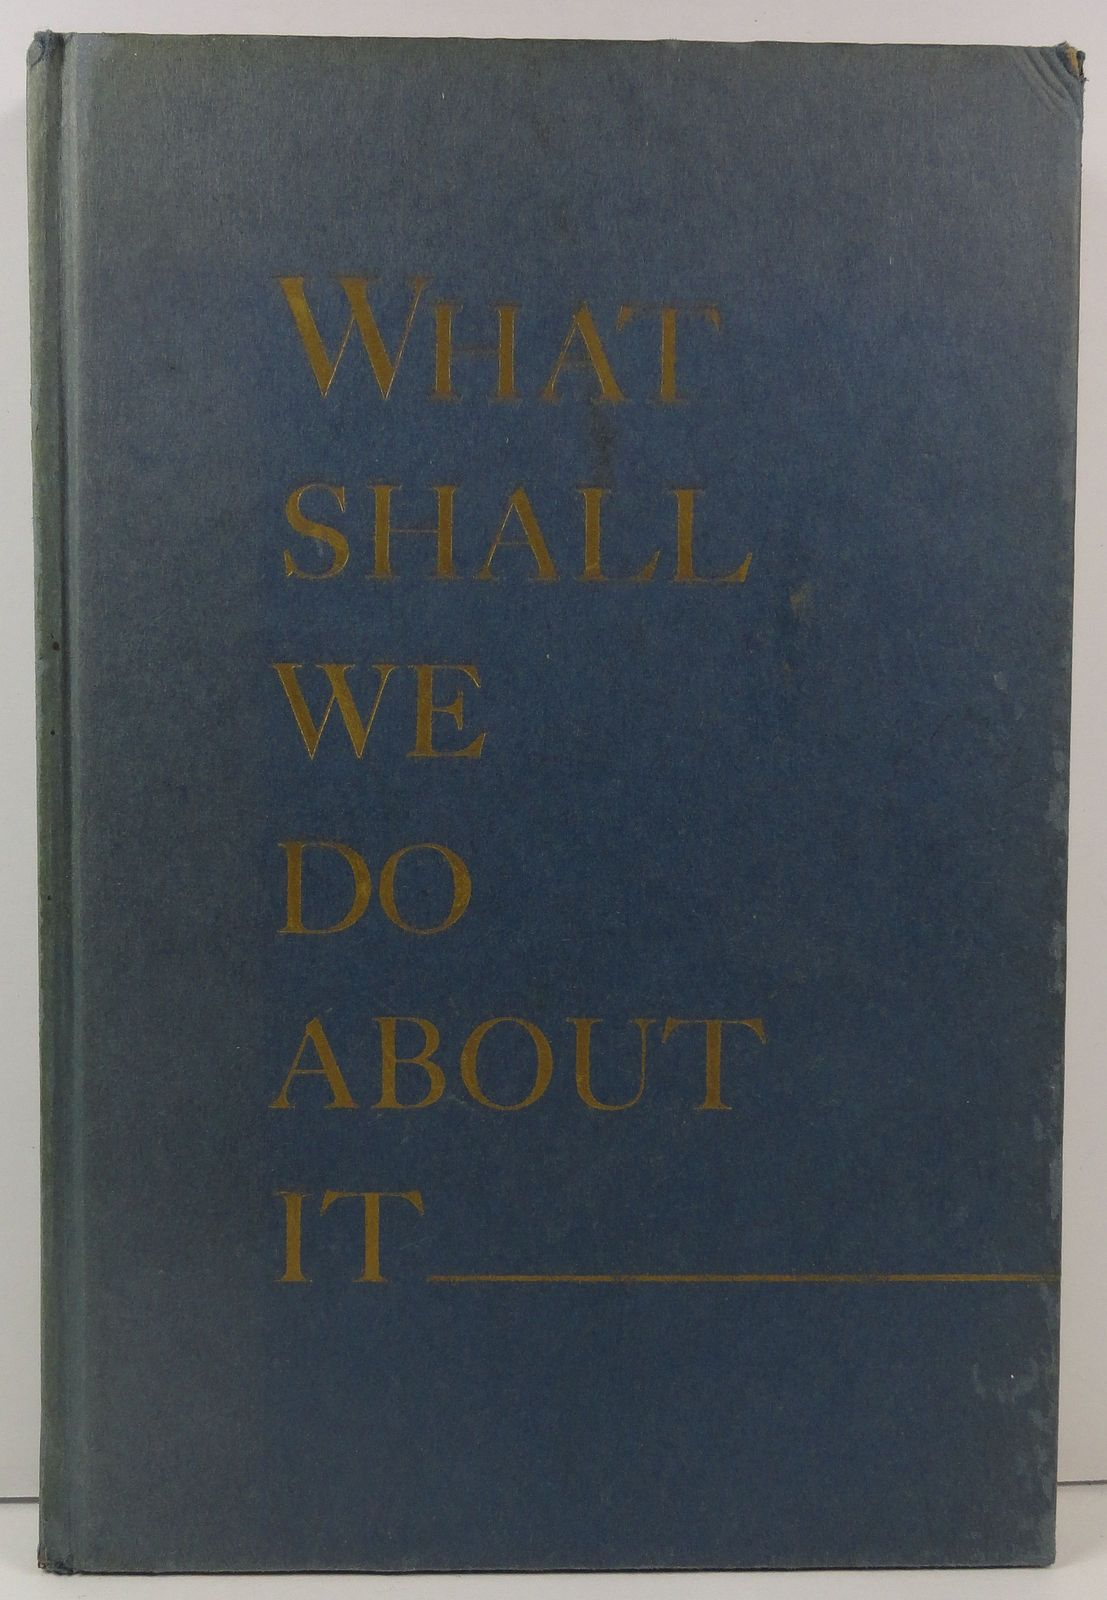 What Shall We Do About It by Everett R. Smith 1944 McFadden